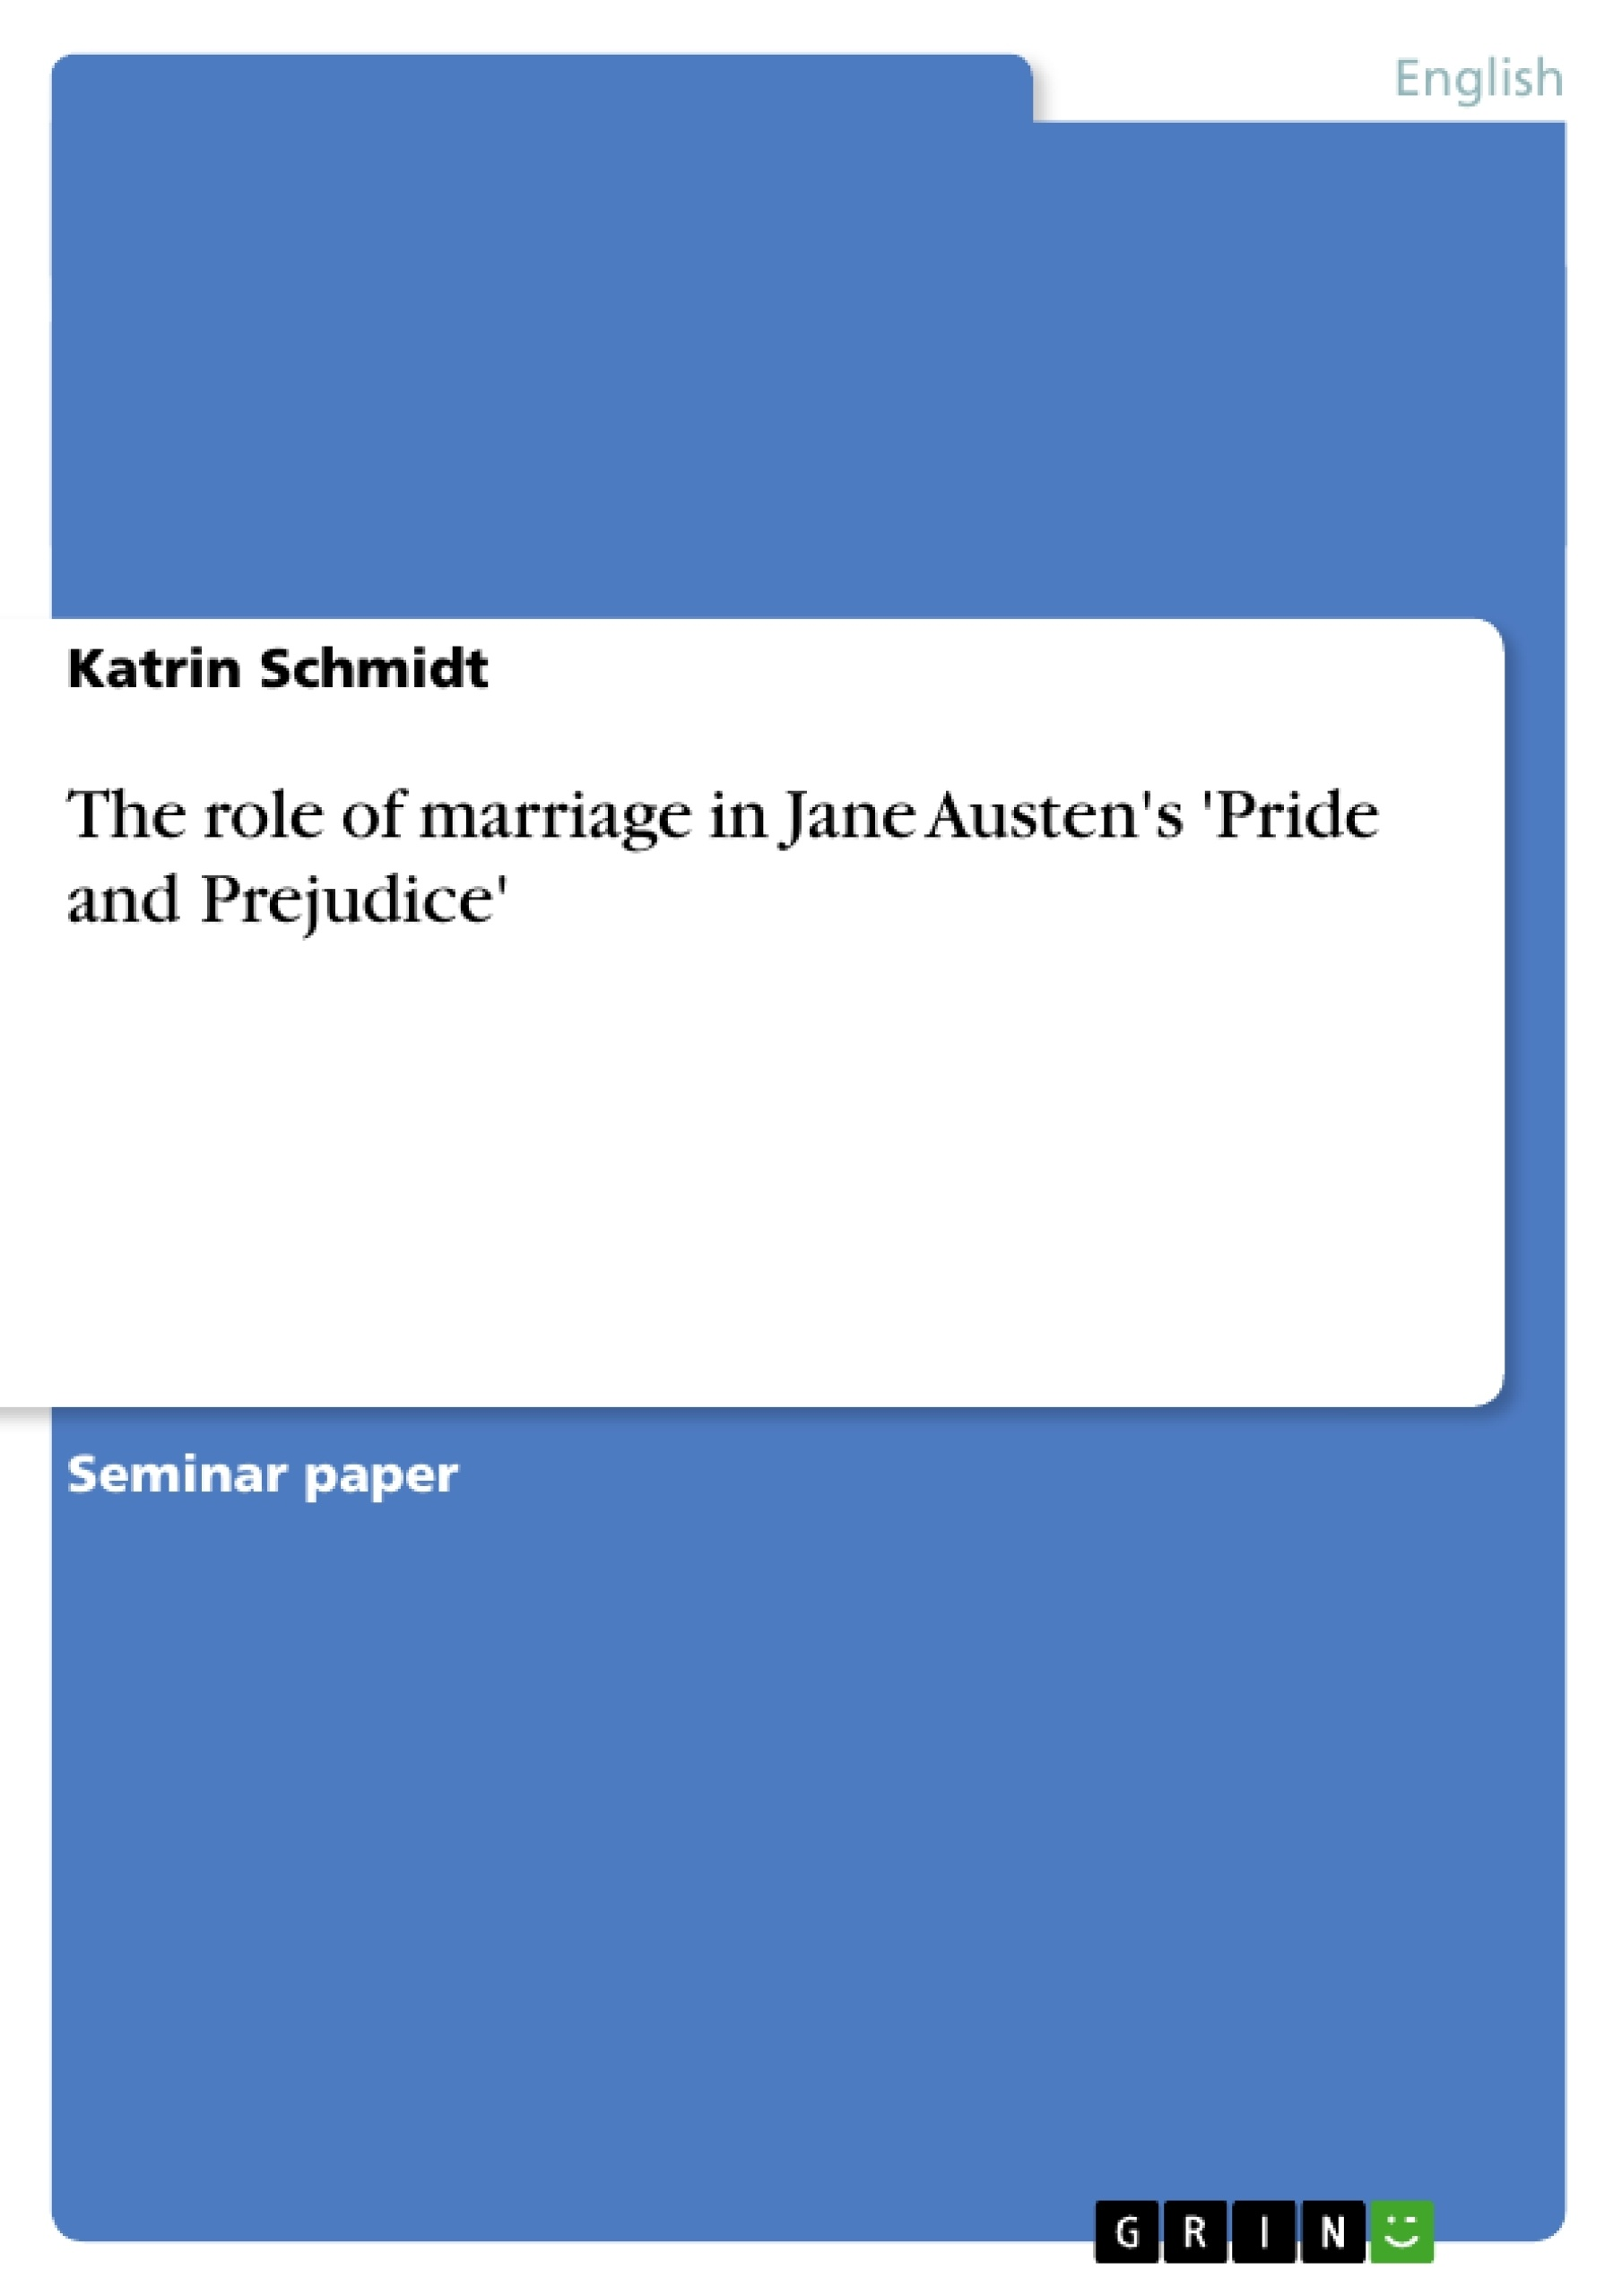 the role of marriage in jane austen s pride and prejudice  upload your own papers earn money and win an iphone x